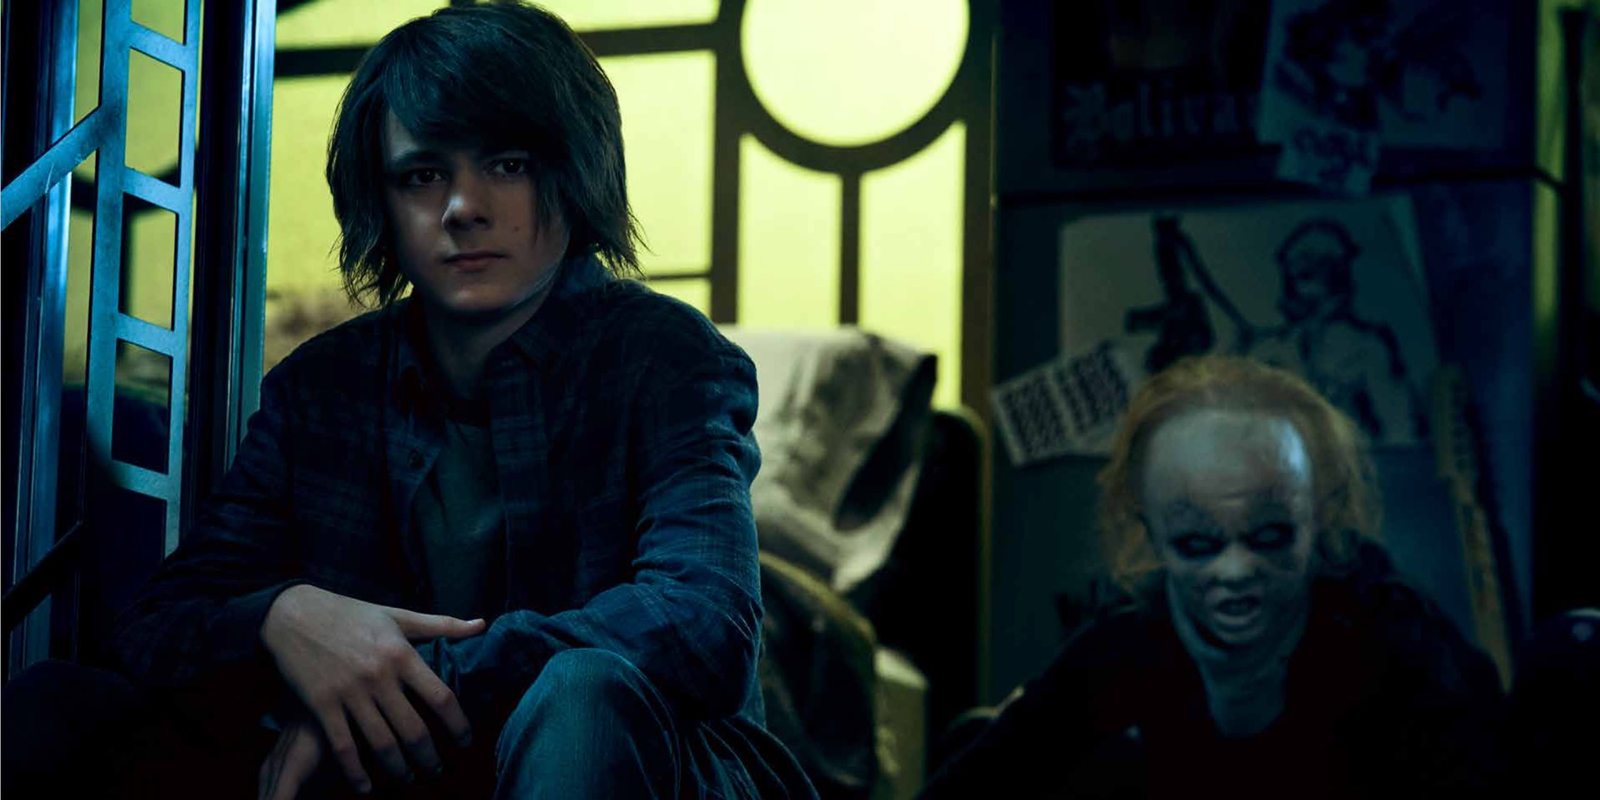 Max Charles as Zack Goodweather in The Strain